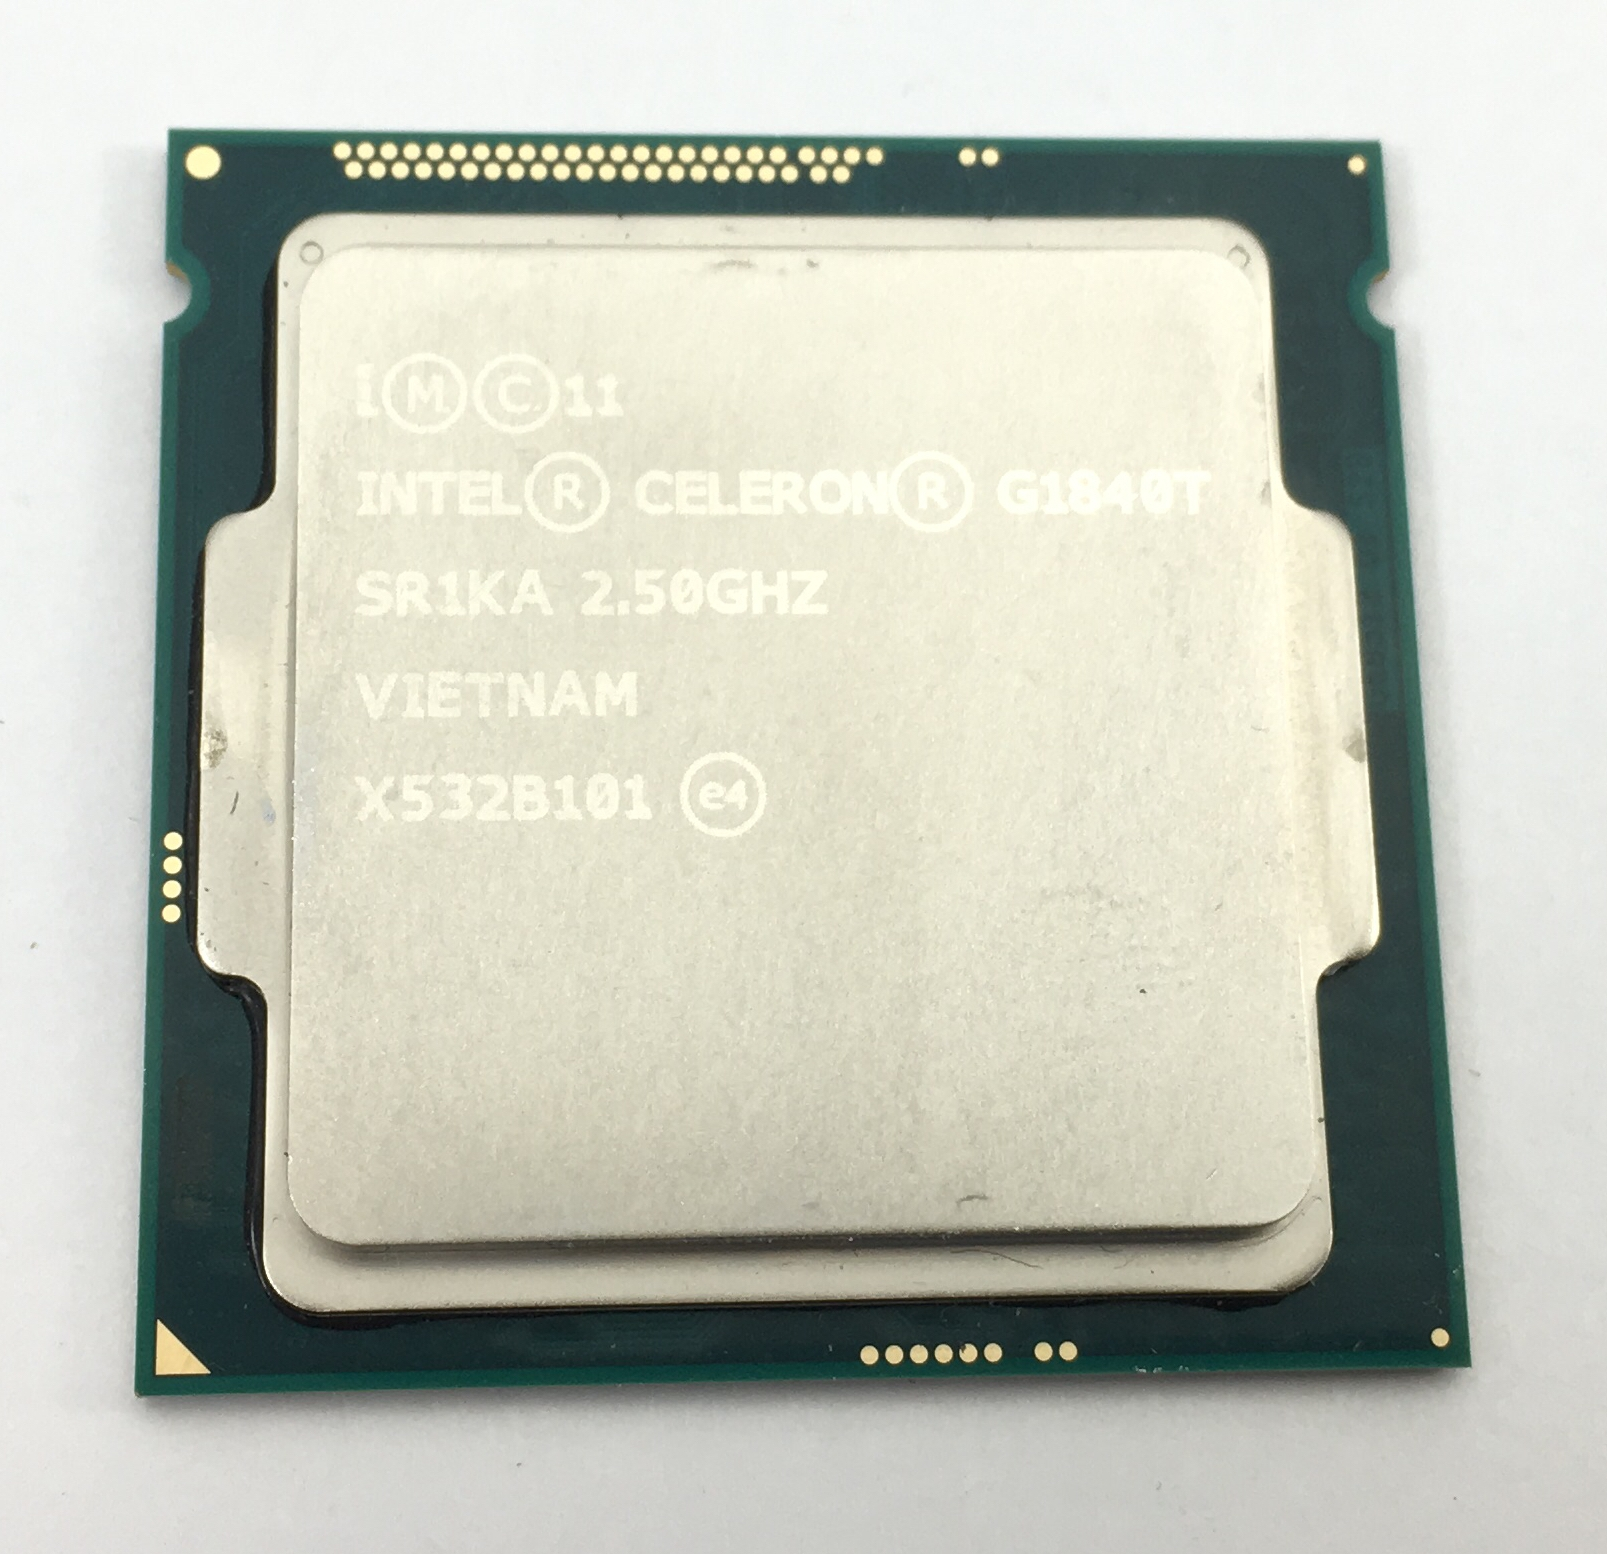 Intel Celeron G1840T Dual Core 2.5GHz 2MB LGA1150 Processor (SR1KA)